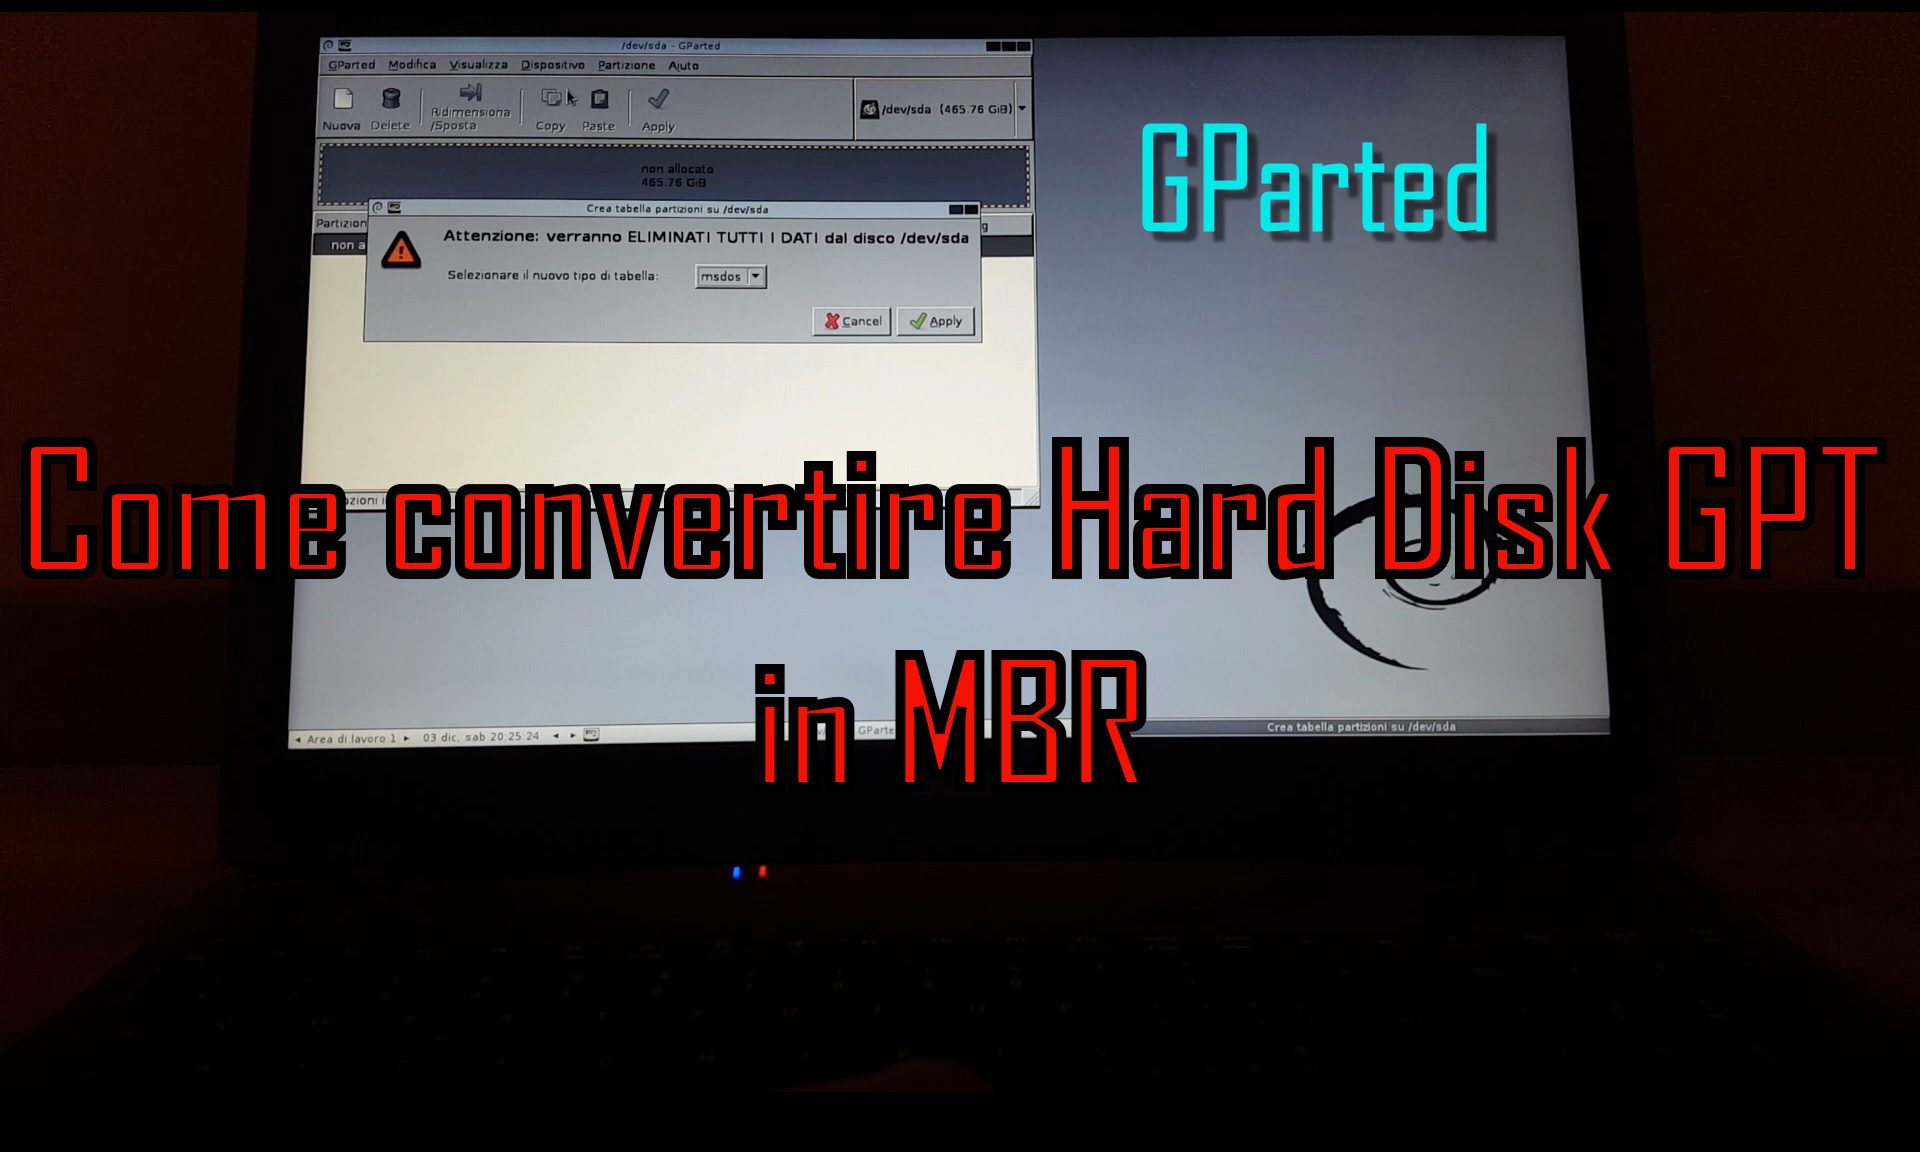 Come convertire Hard Disk GPT in MBR